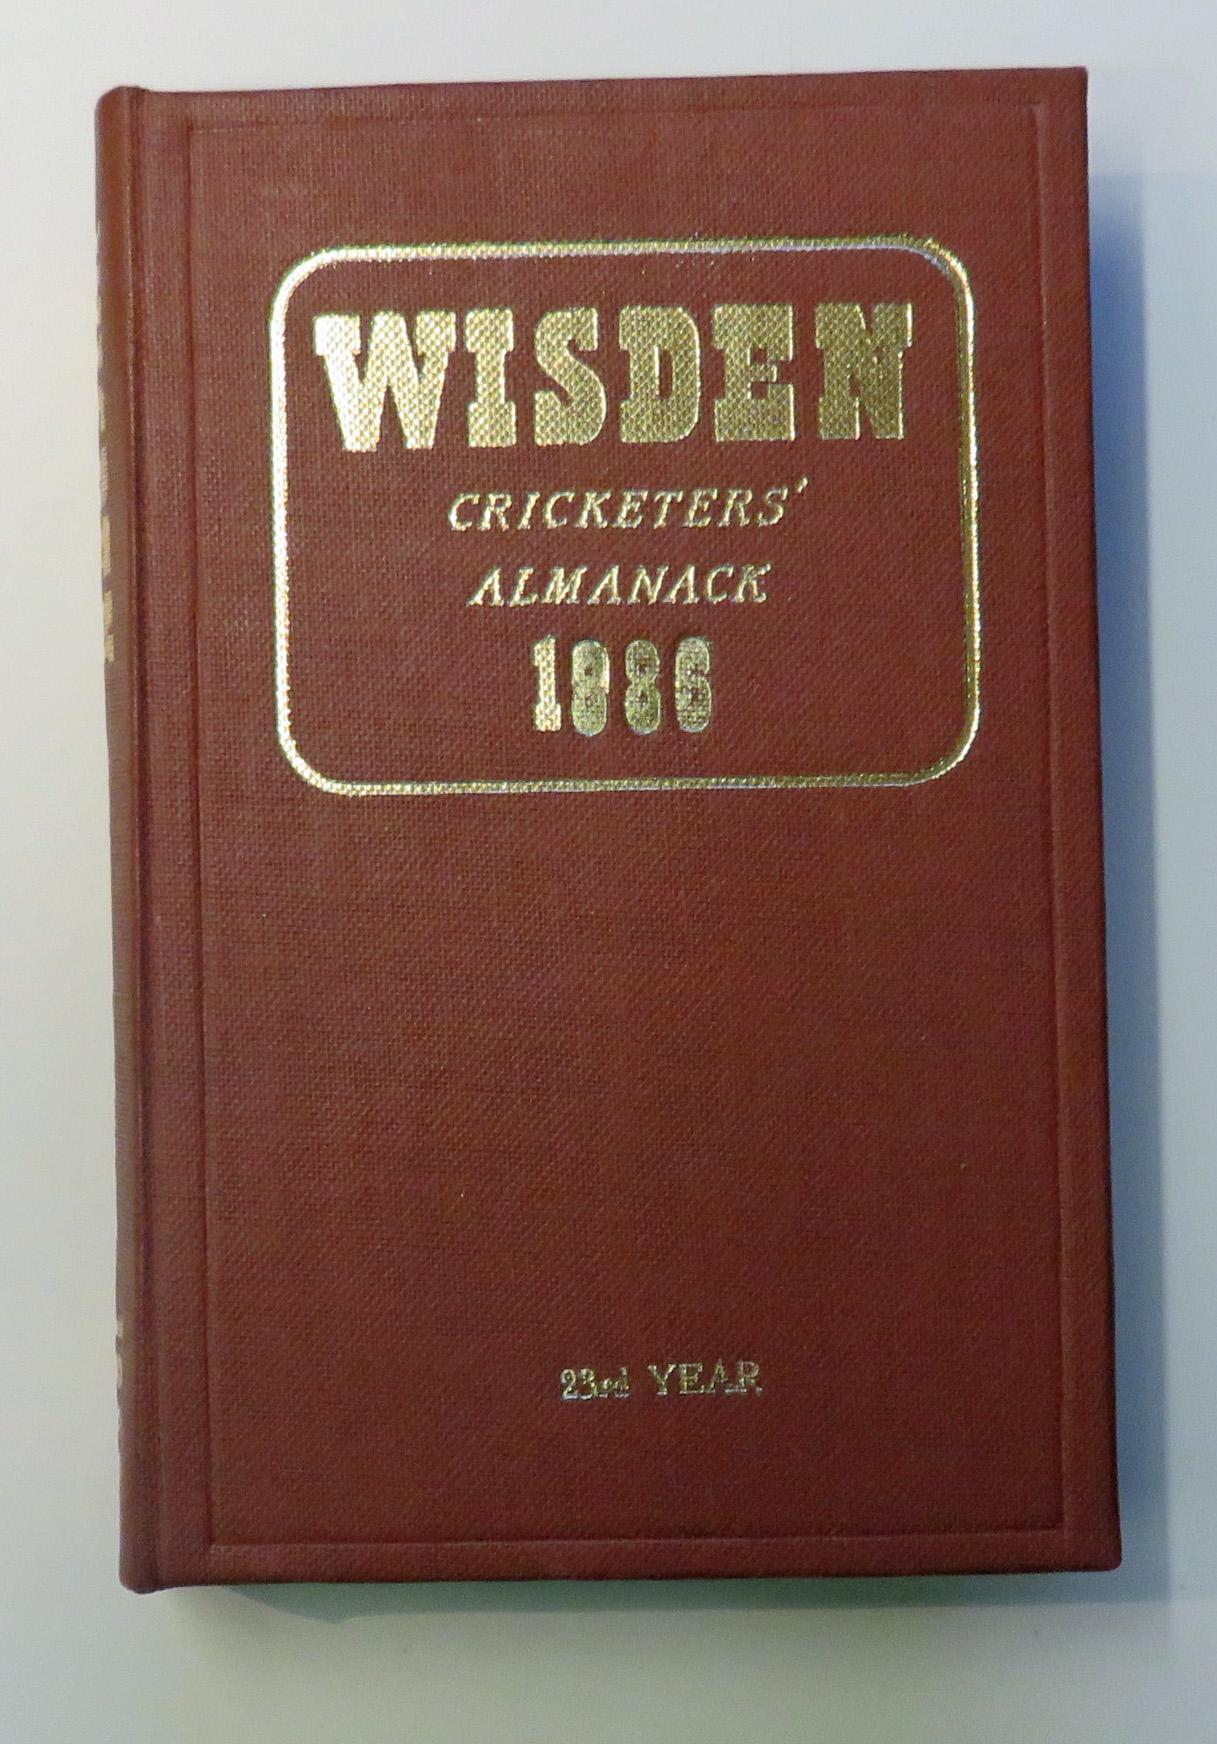 **John Wisden's Cricketers' Almanack For 1886